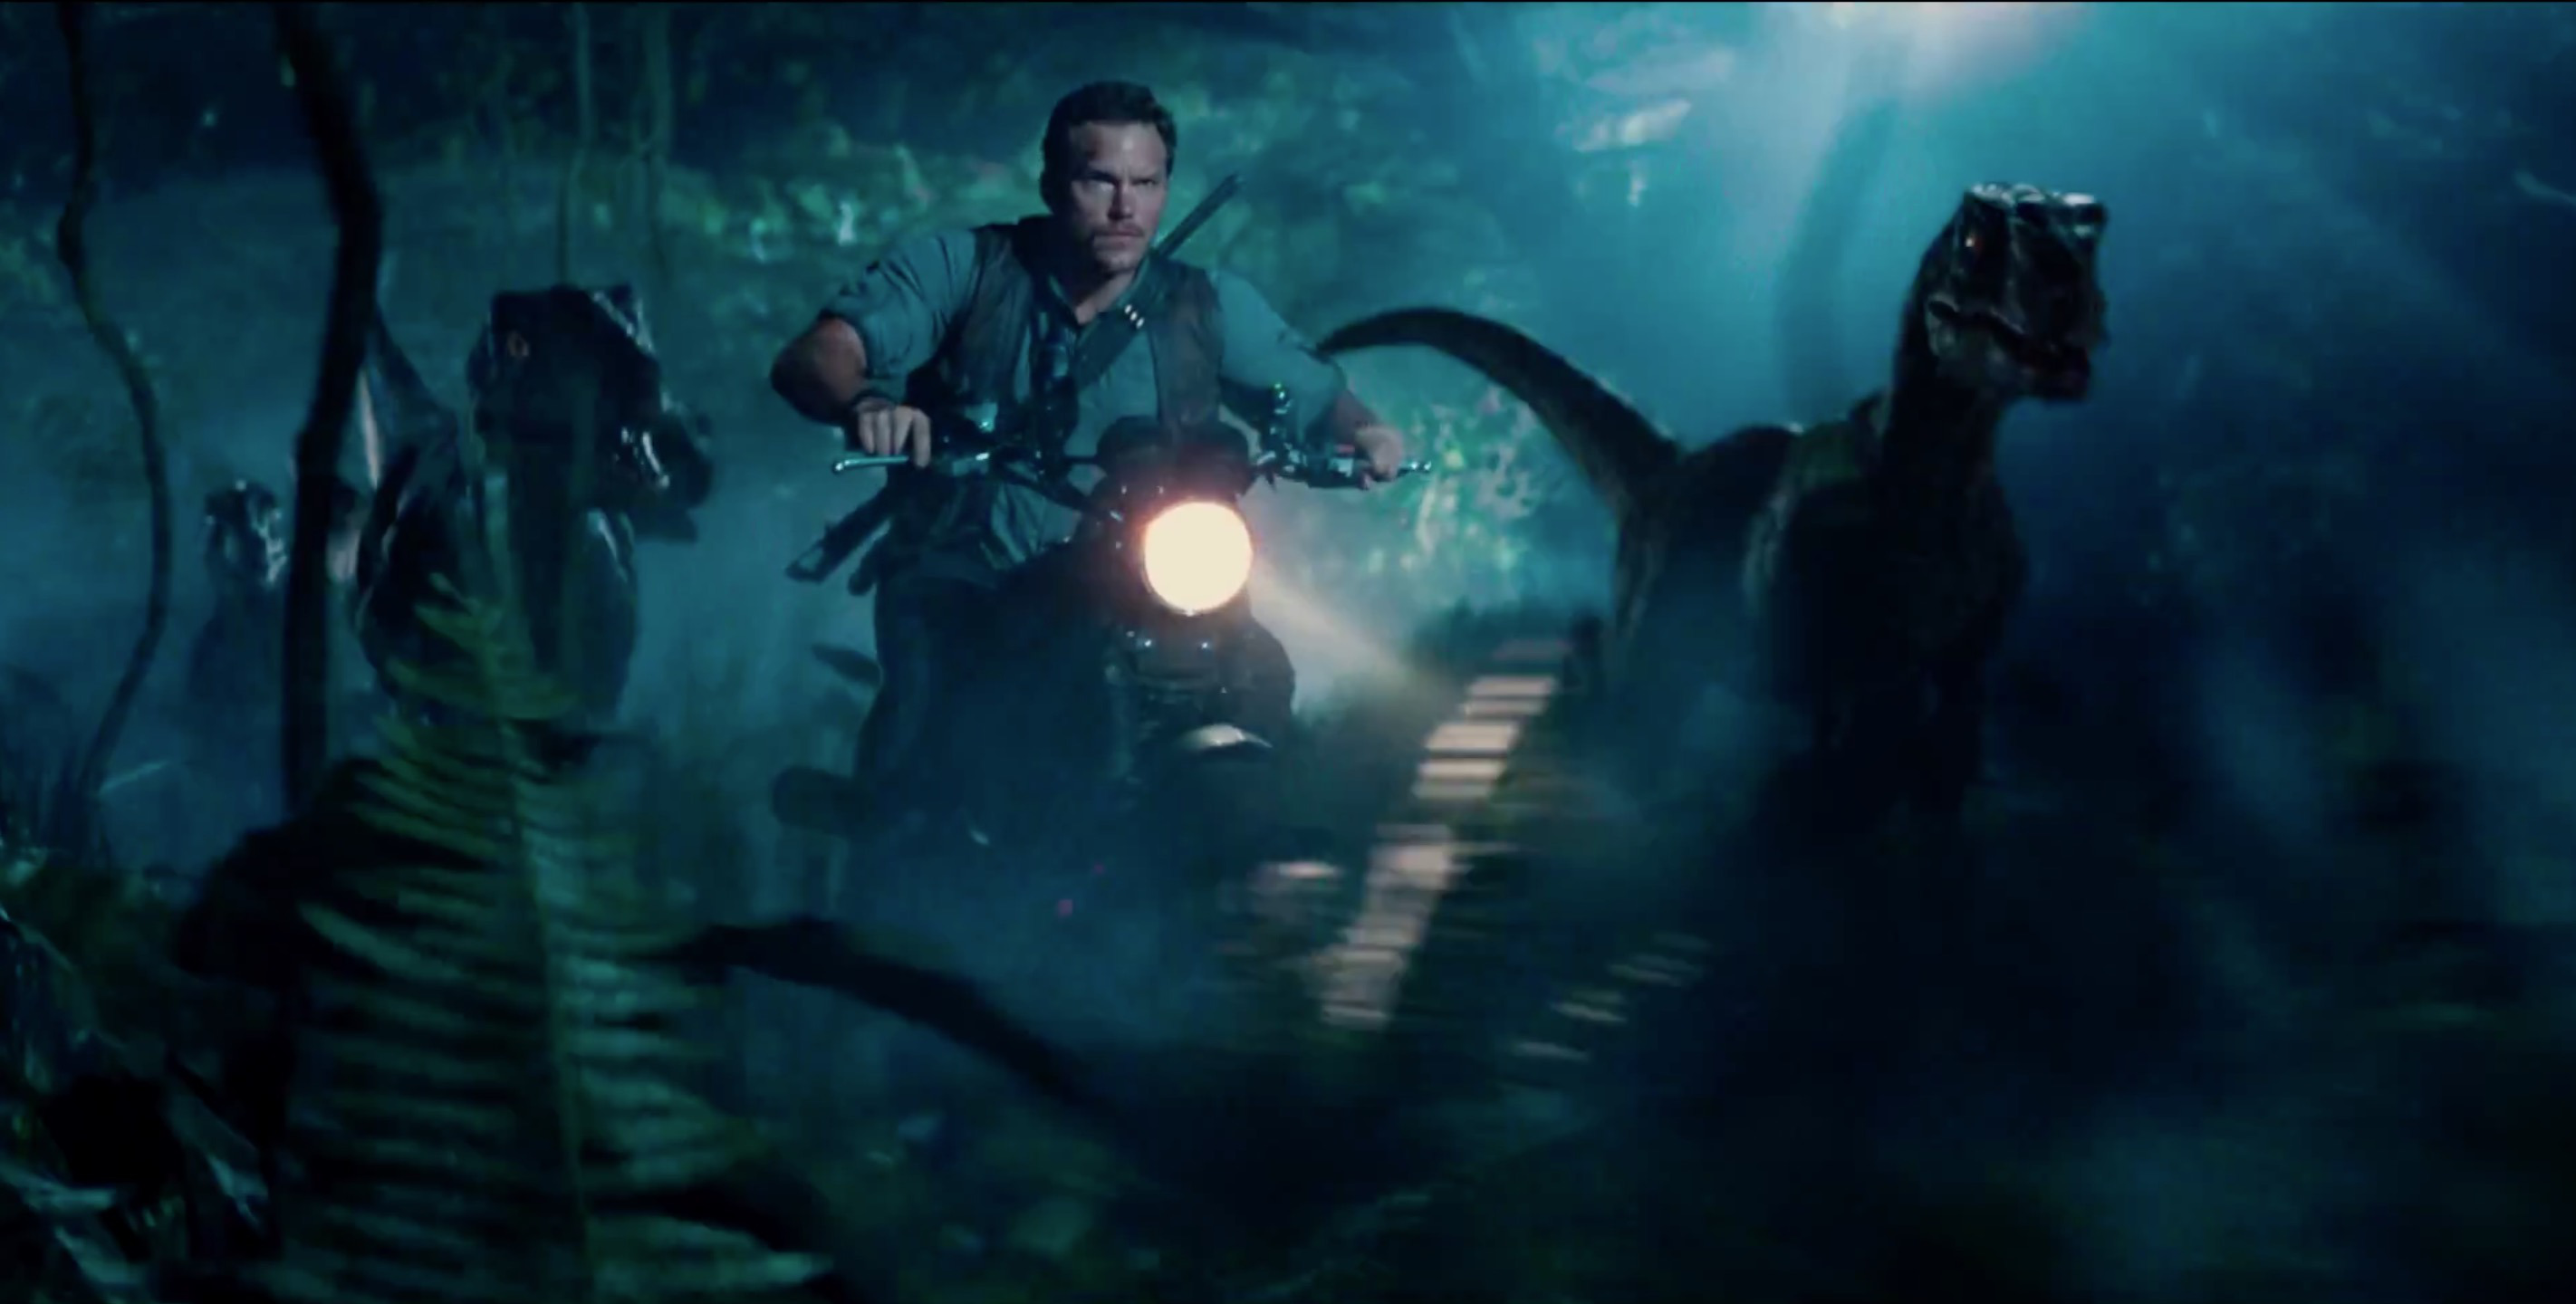 Jurassic-World-Trailer-Still-48